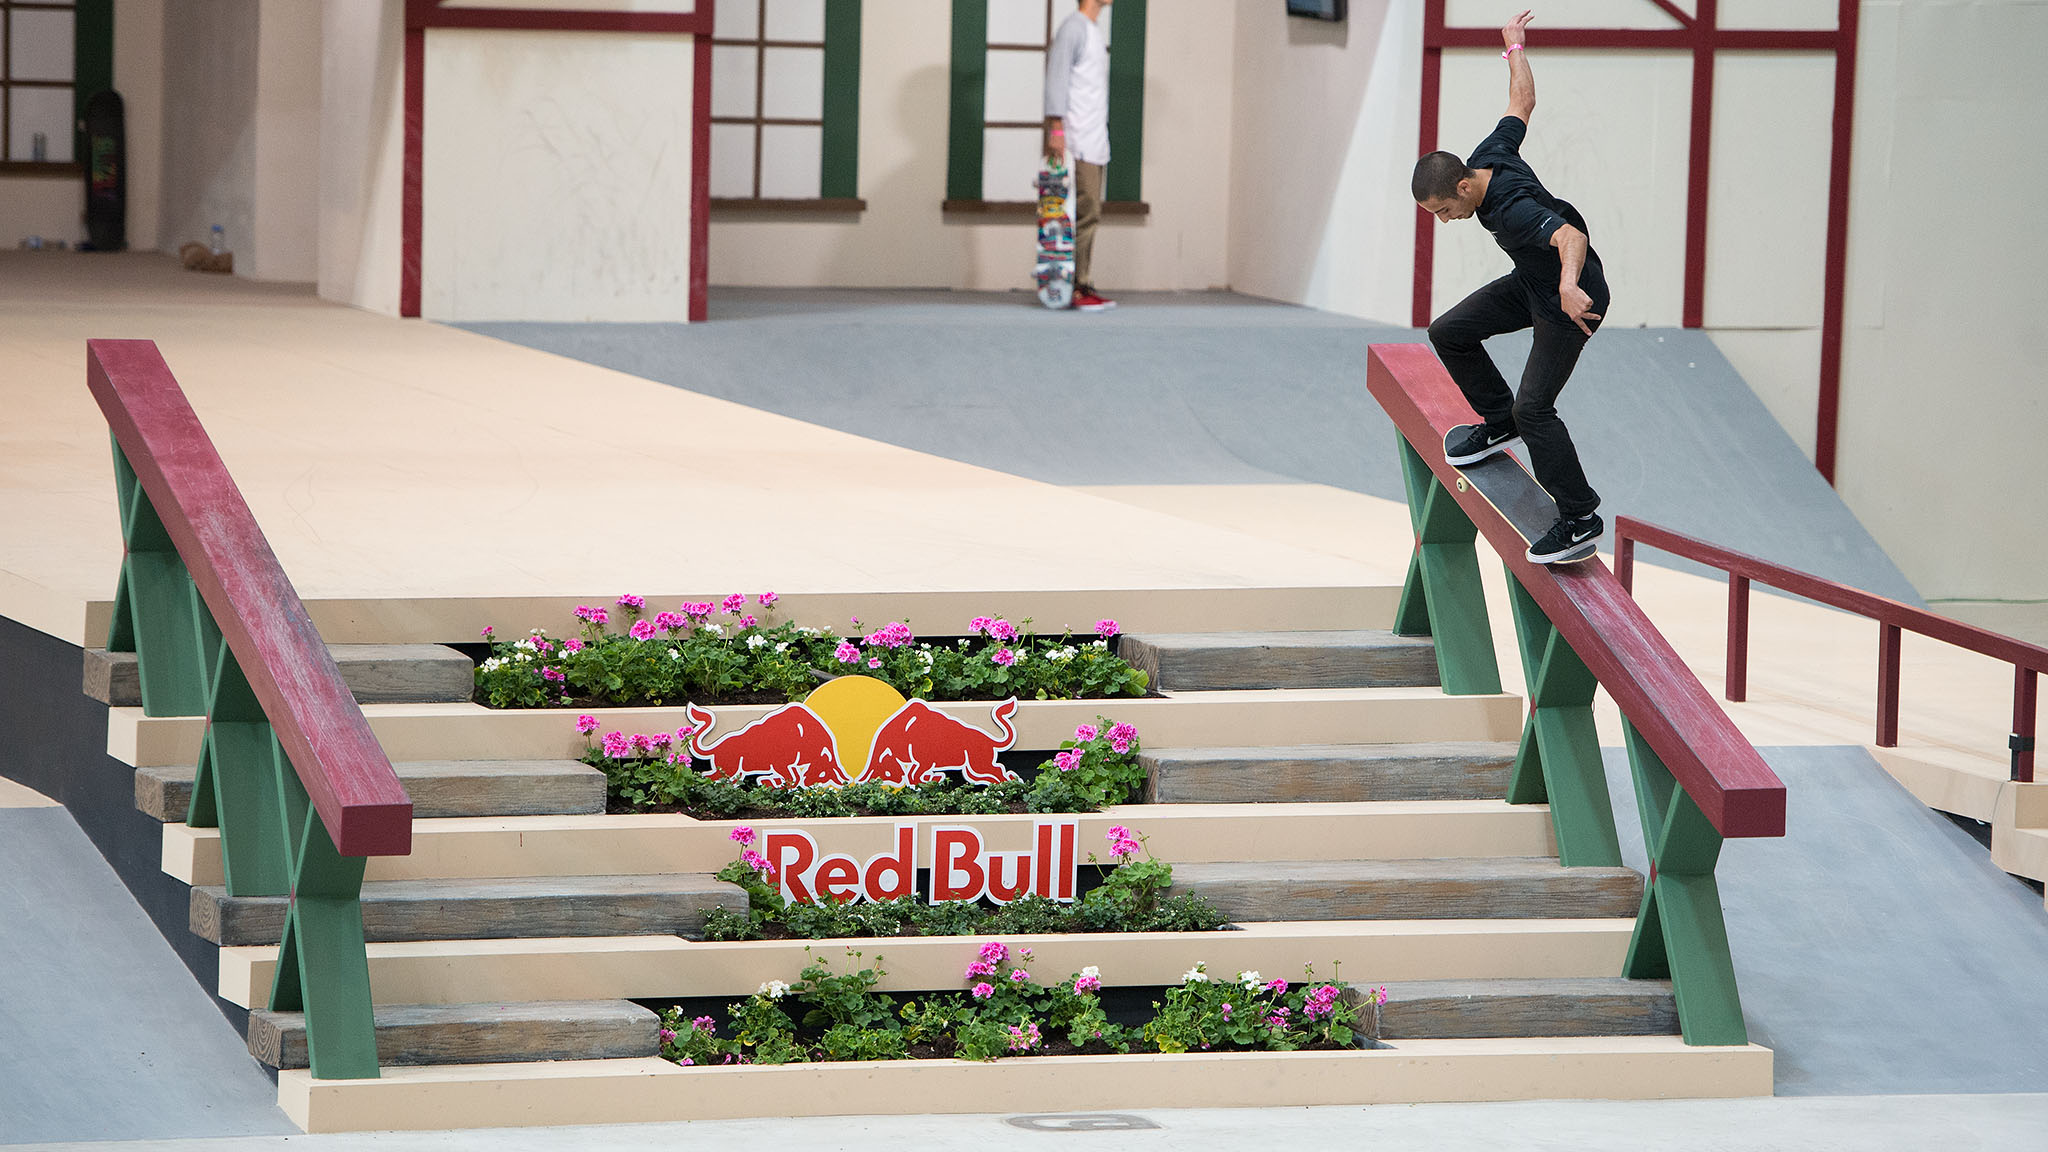 Belgian skater Youness Amrani kicked off X Games Munich with a win in SLS Select Series, earning a spot in the Street League prelims on Friday.